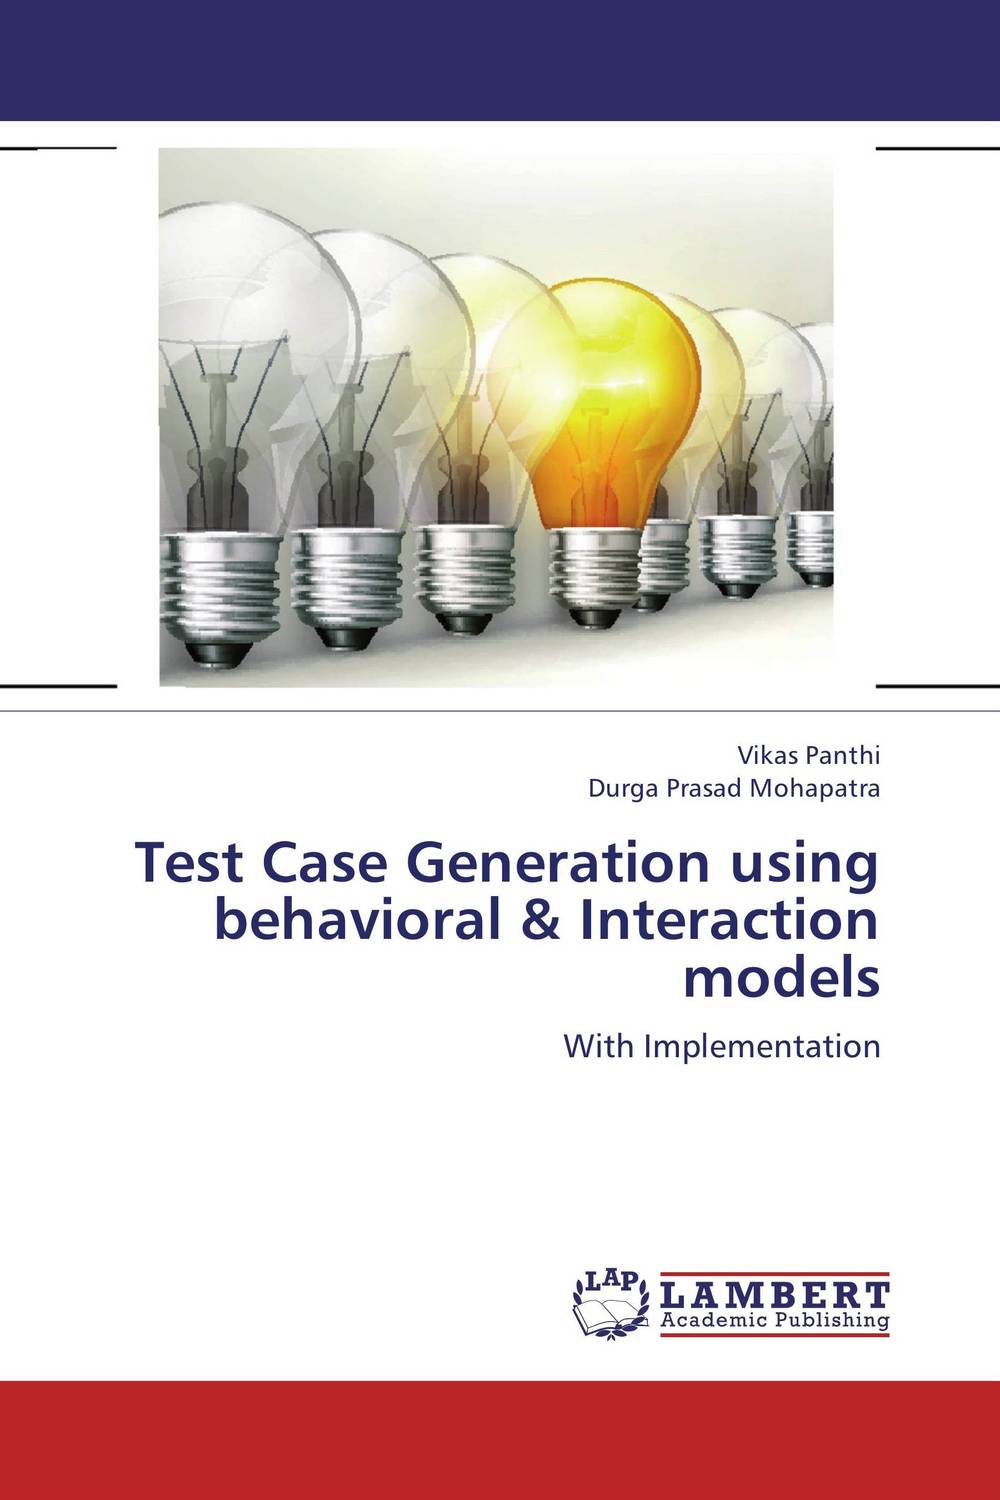 Test Case Generation using behavioral & Interaction models worst–case scenarios